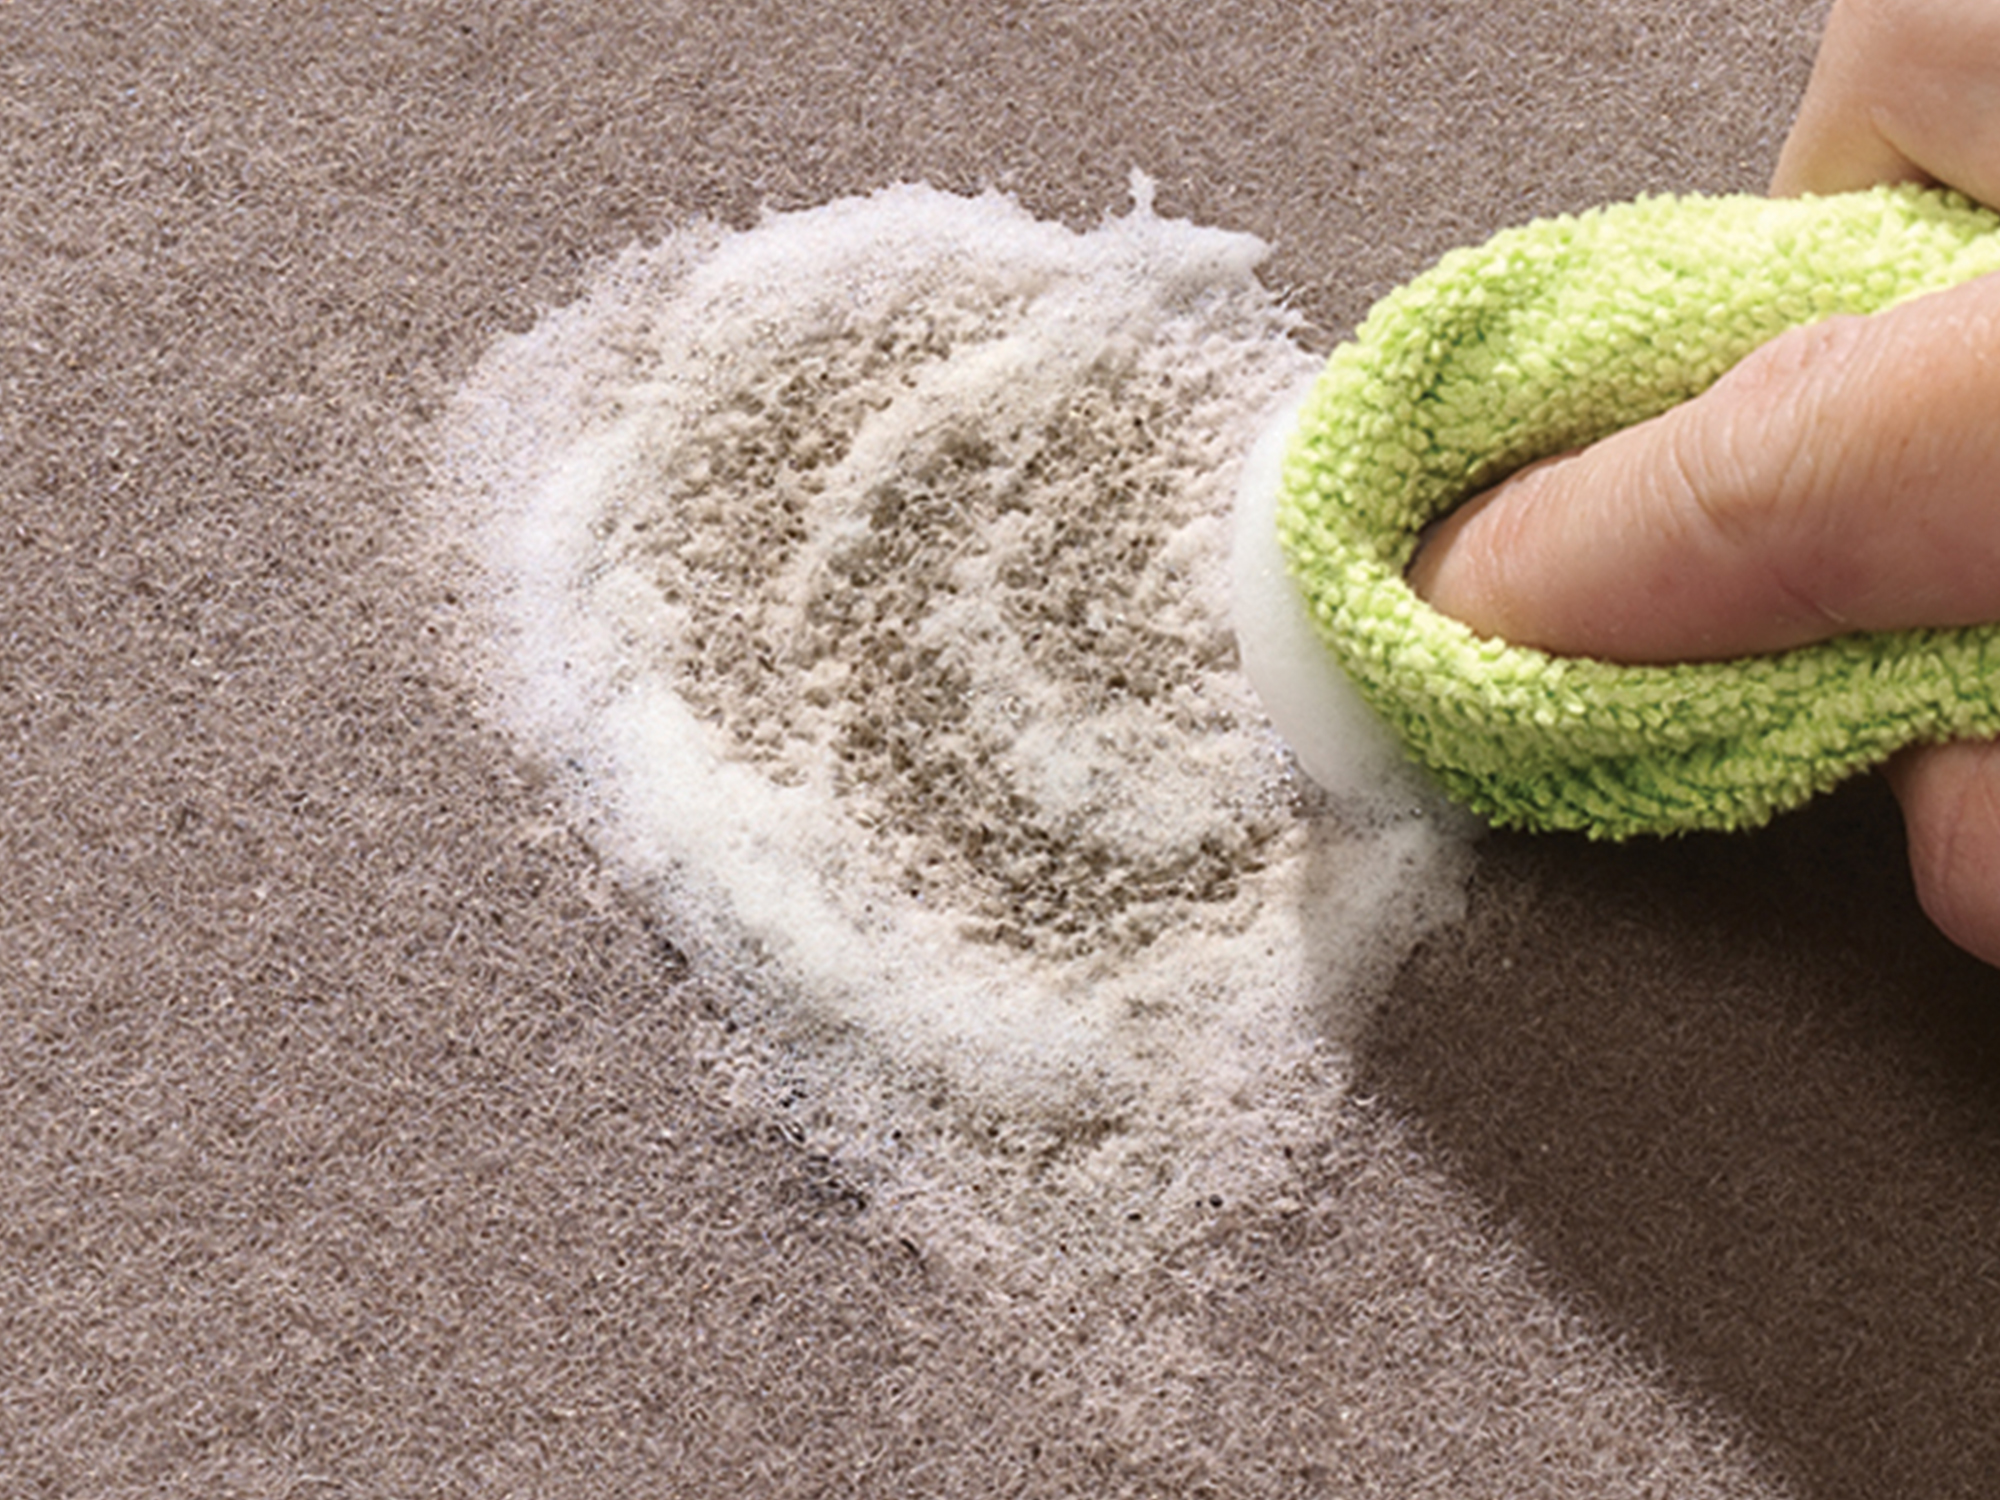 How to Clean Your Vehicle's Floors